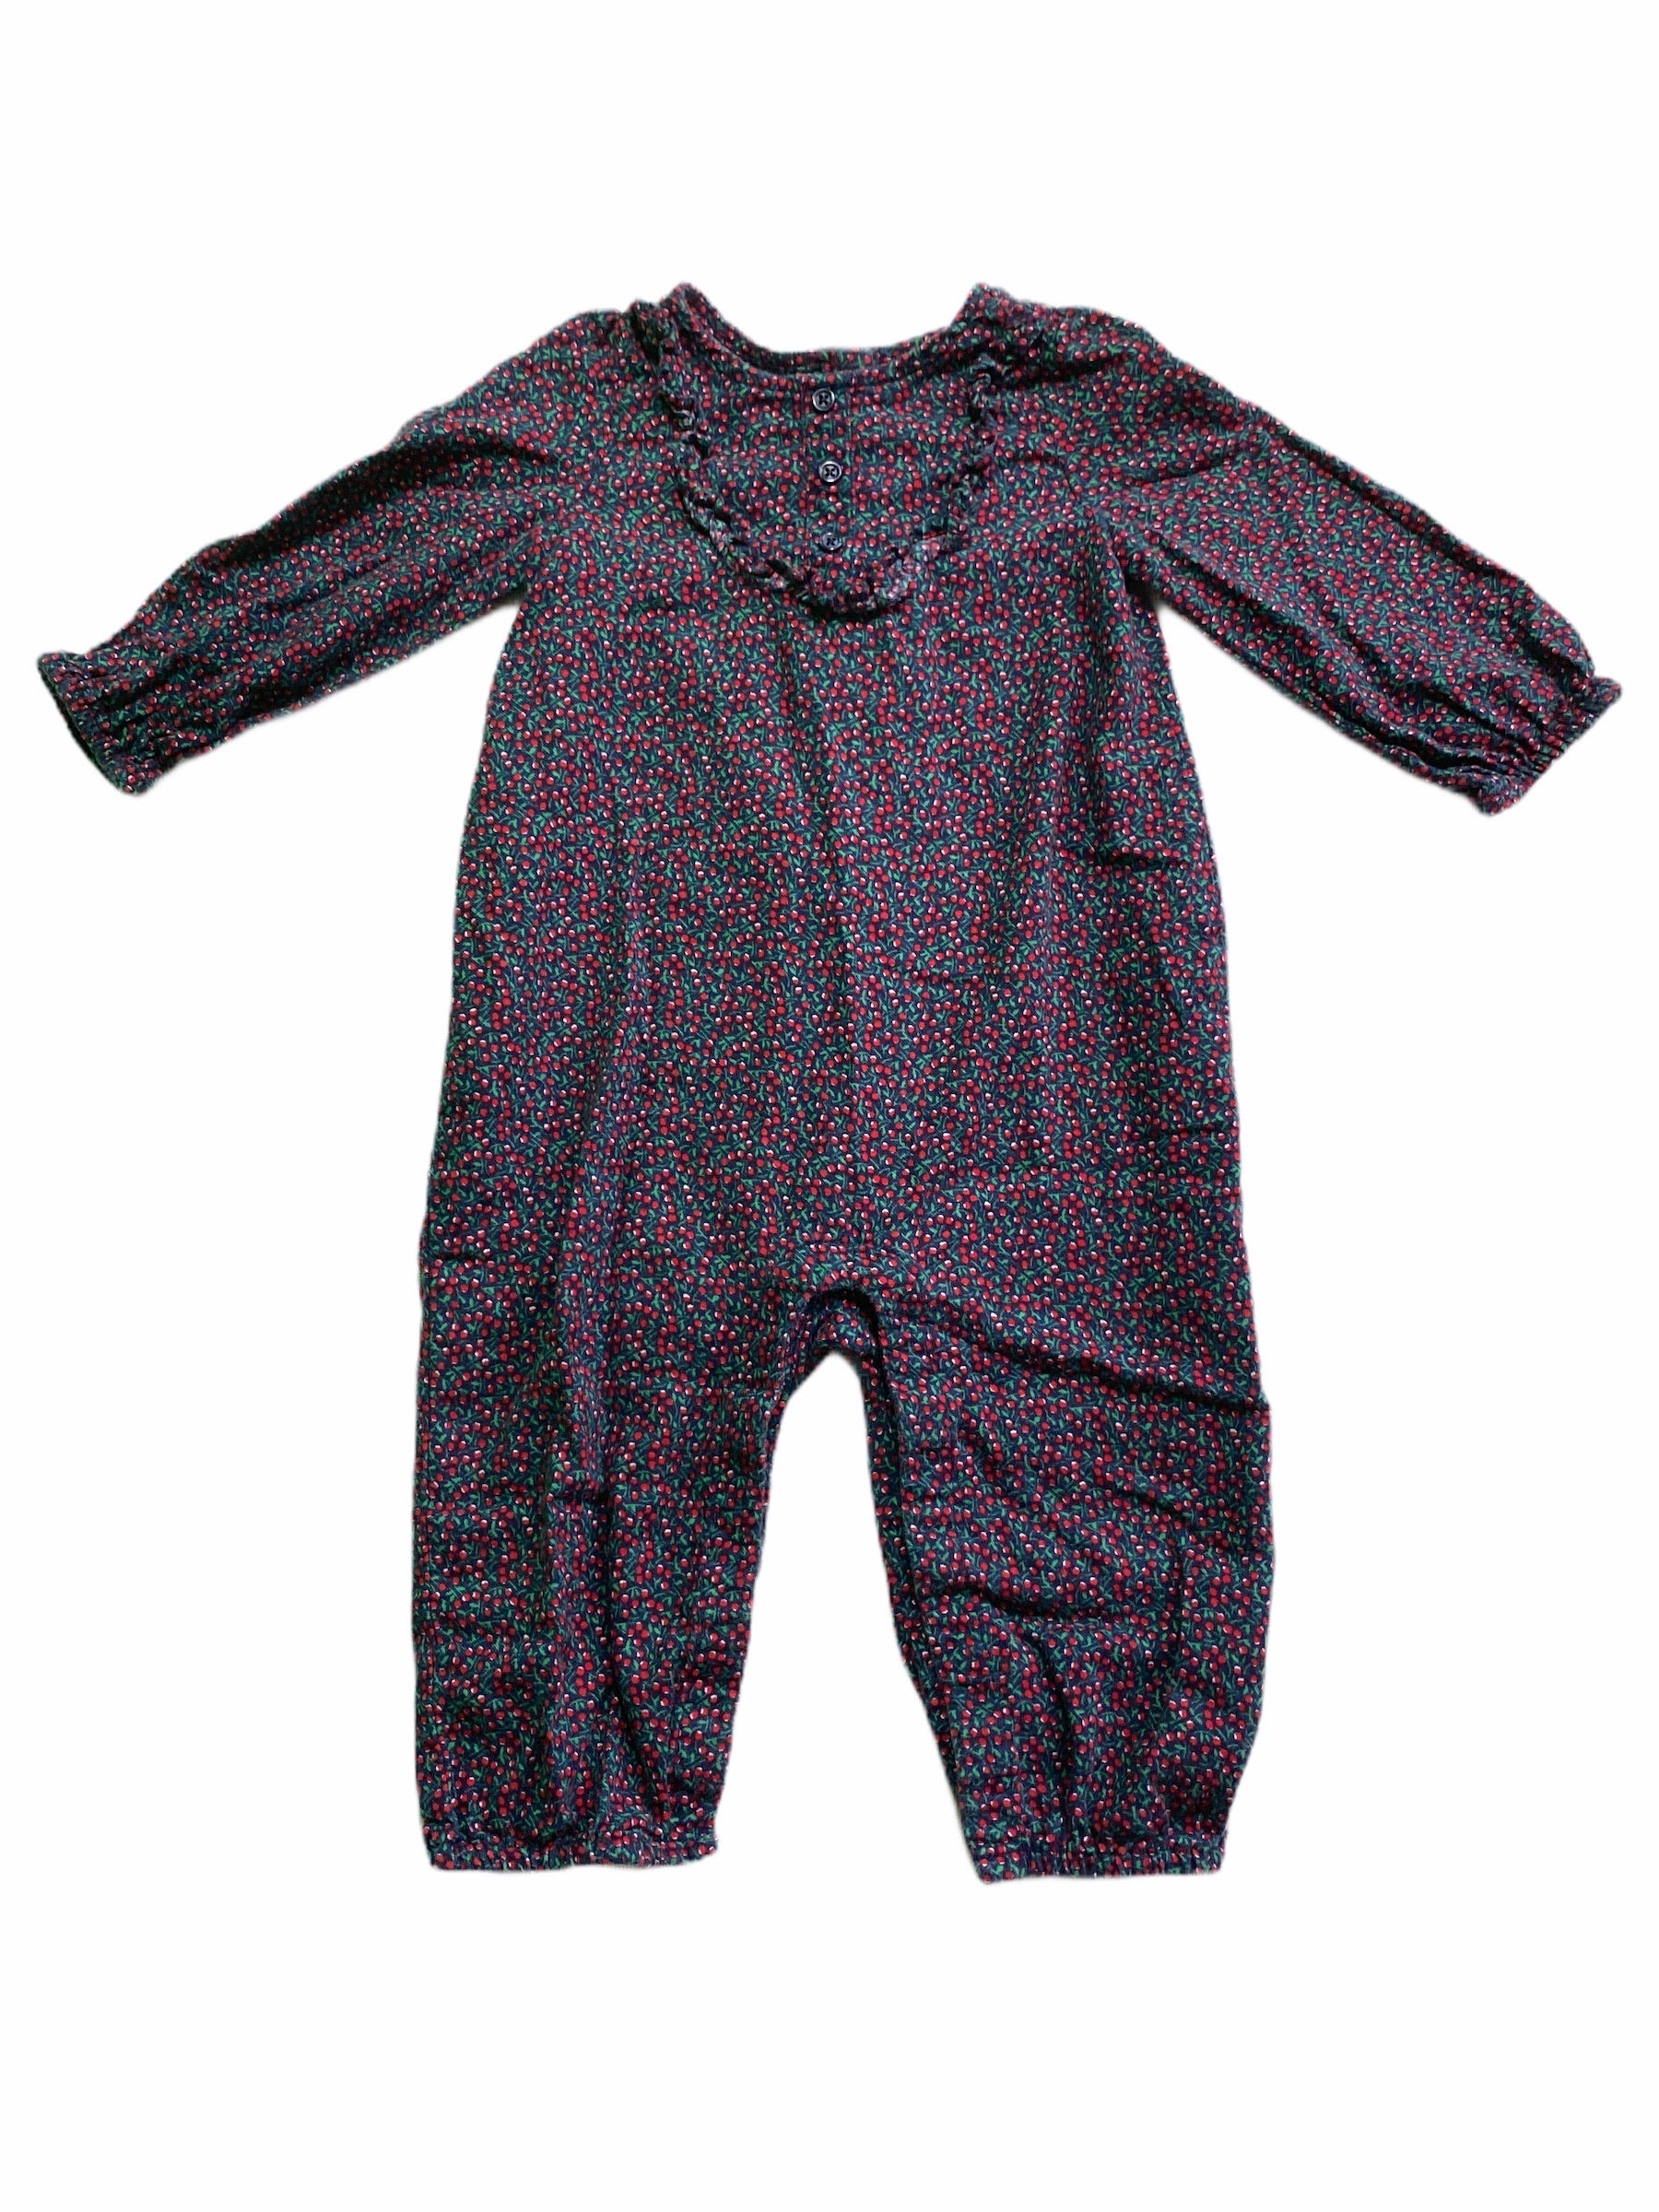 Gap Cherry Print Romper (6/12M Girls)